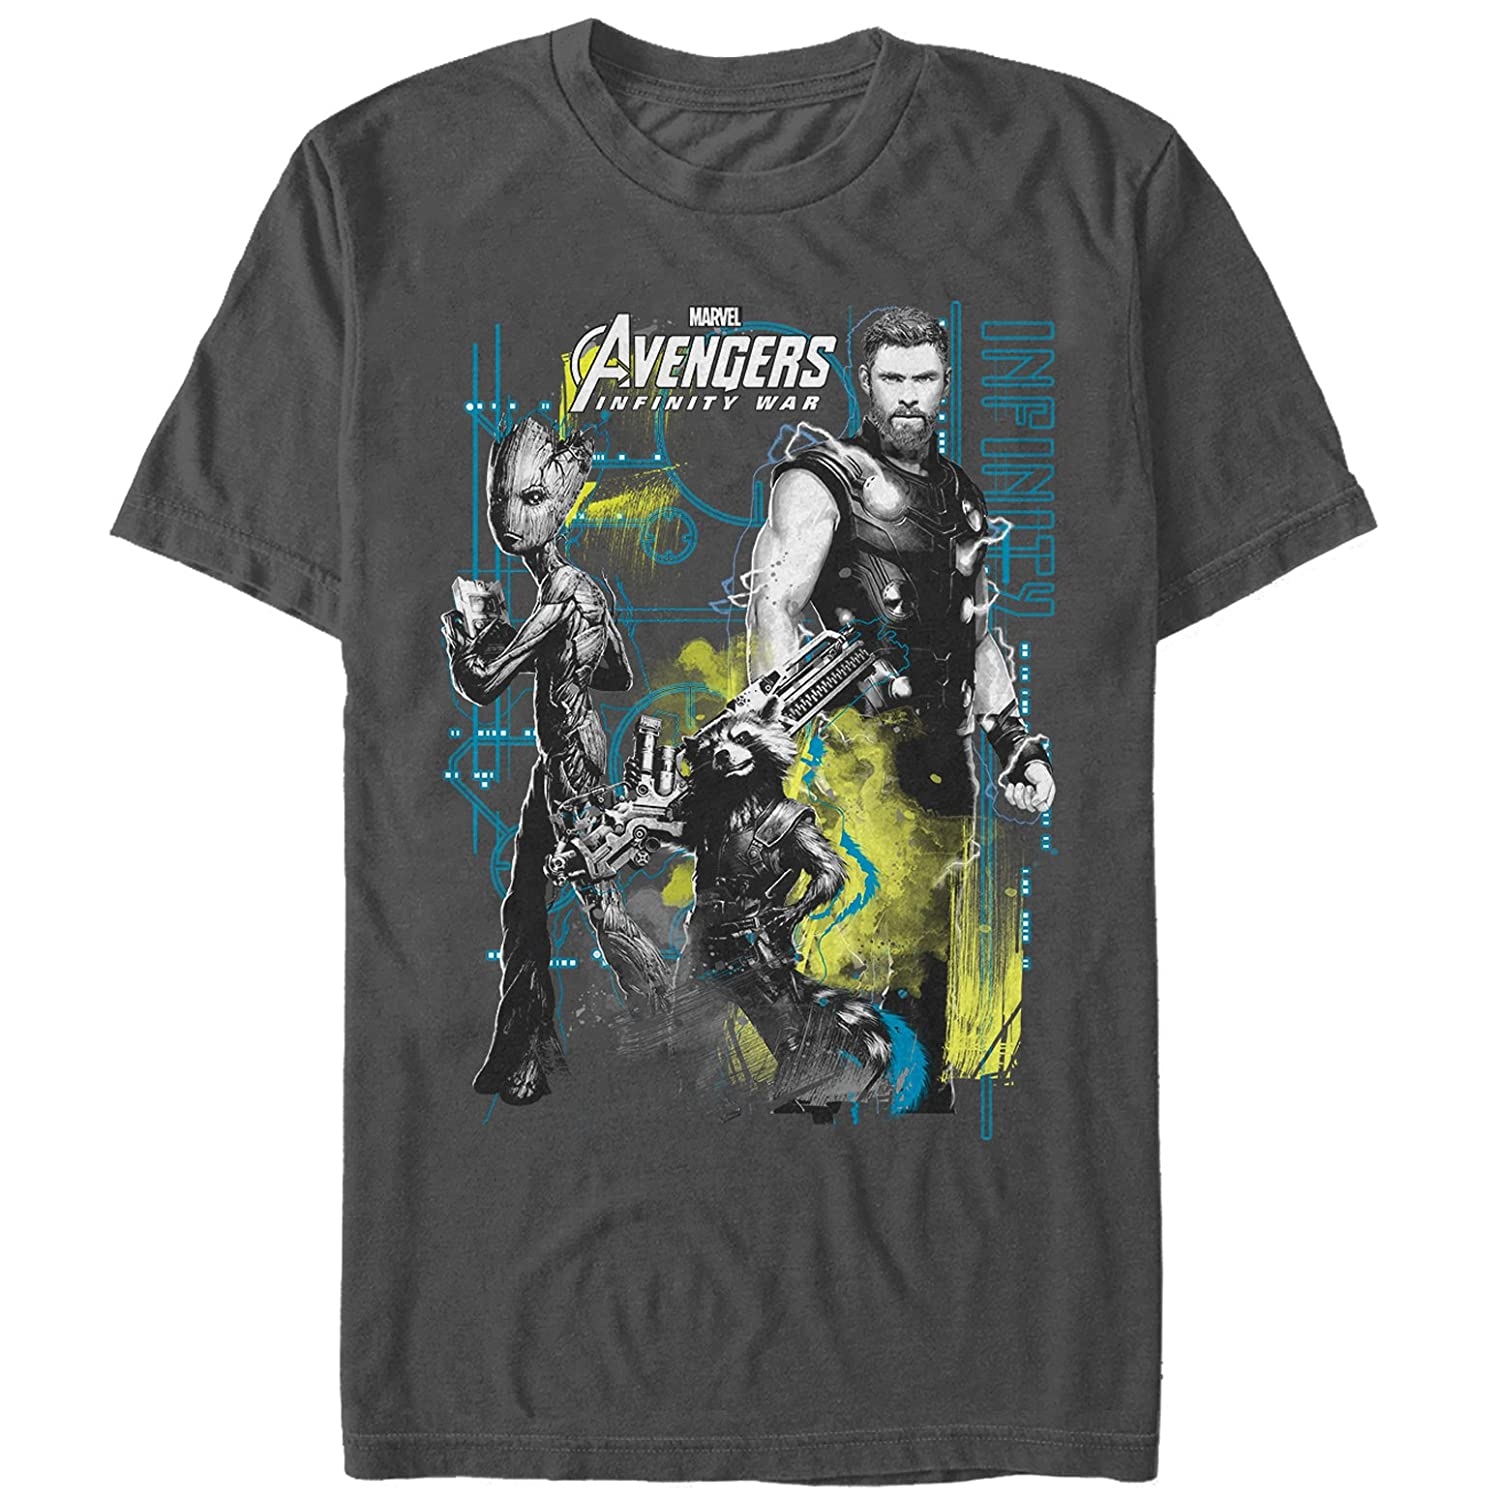 8f5a63e97 Amazon.com: Marvel Men's Avengers: Infinity War Space Crew T-Shirt: Clothing